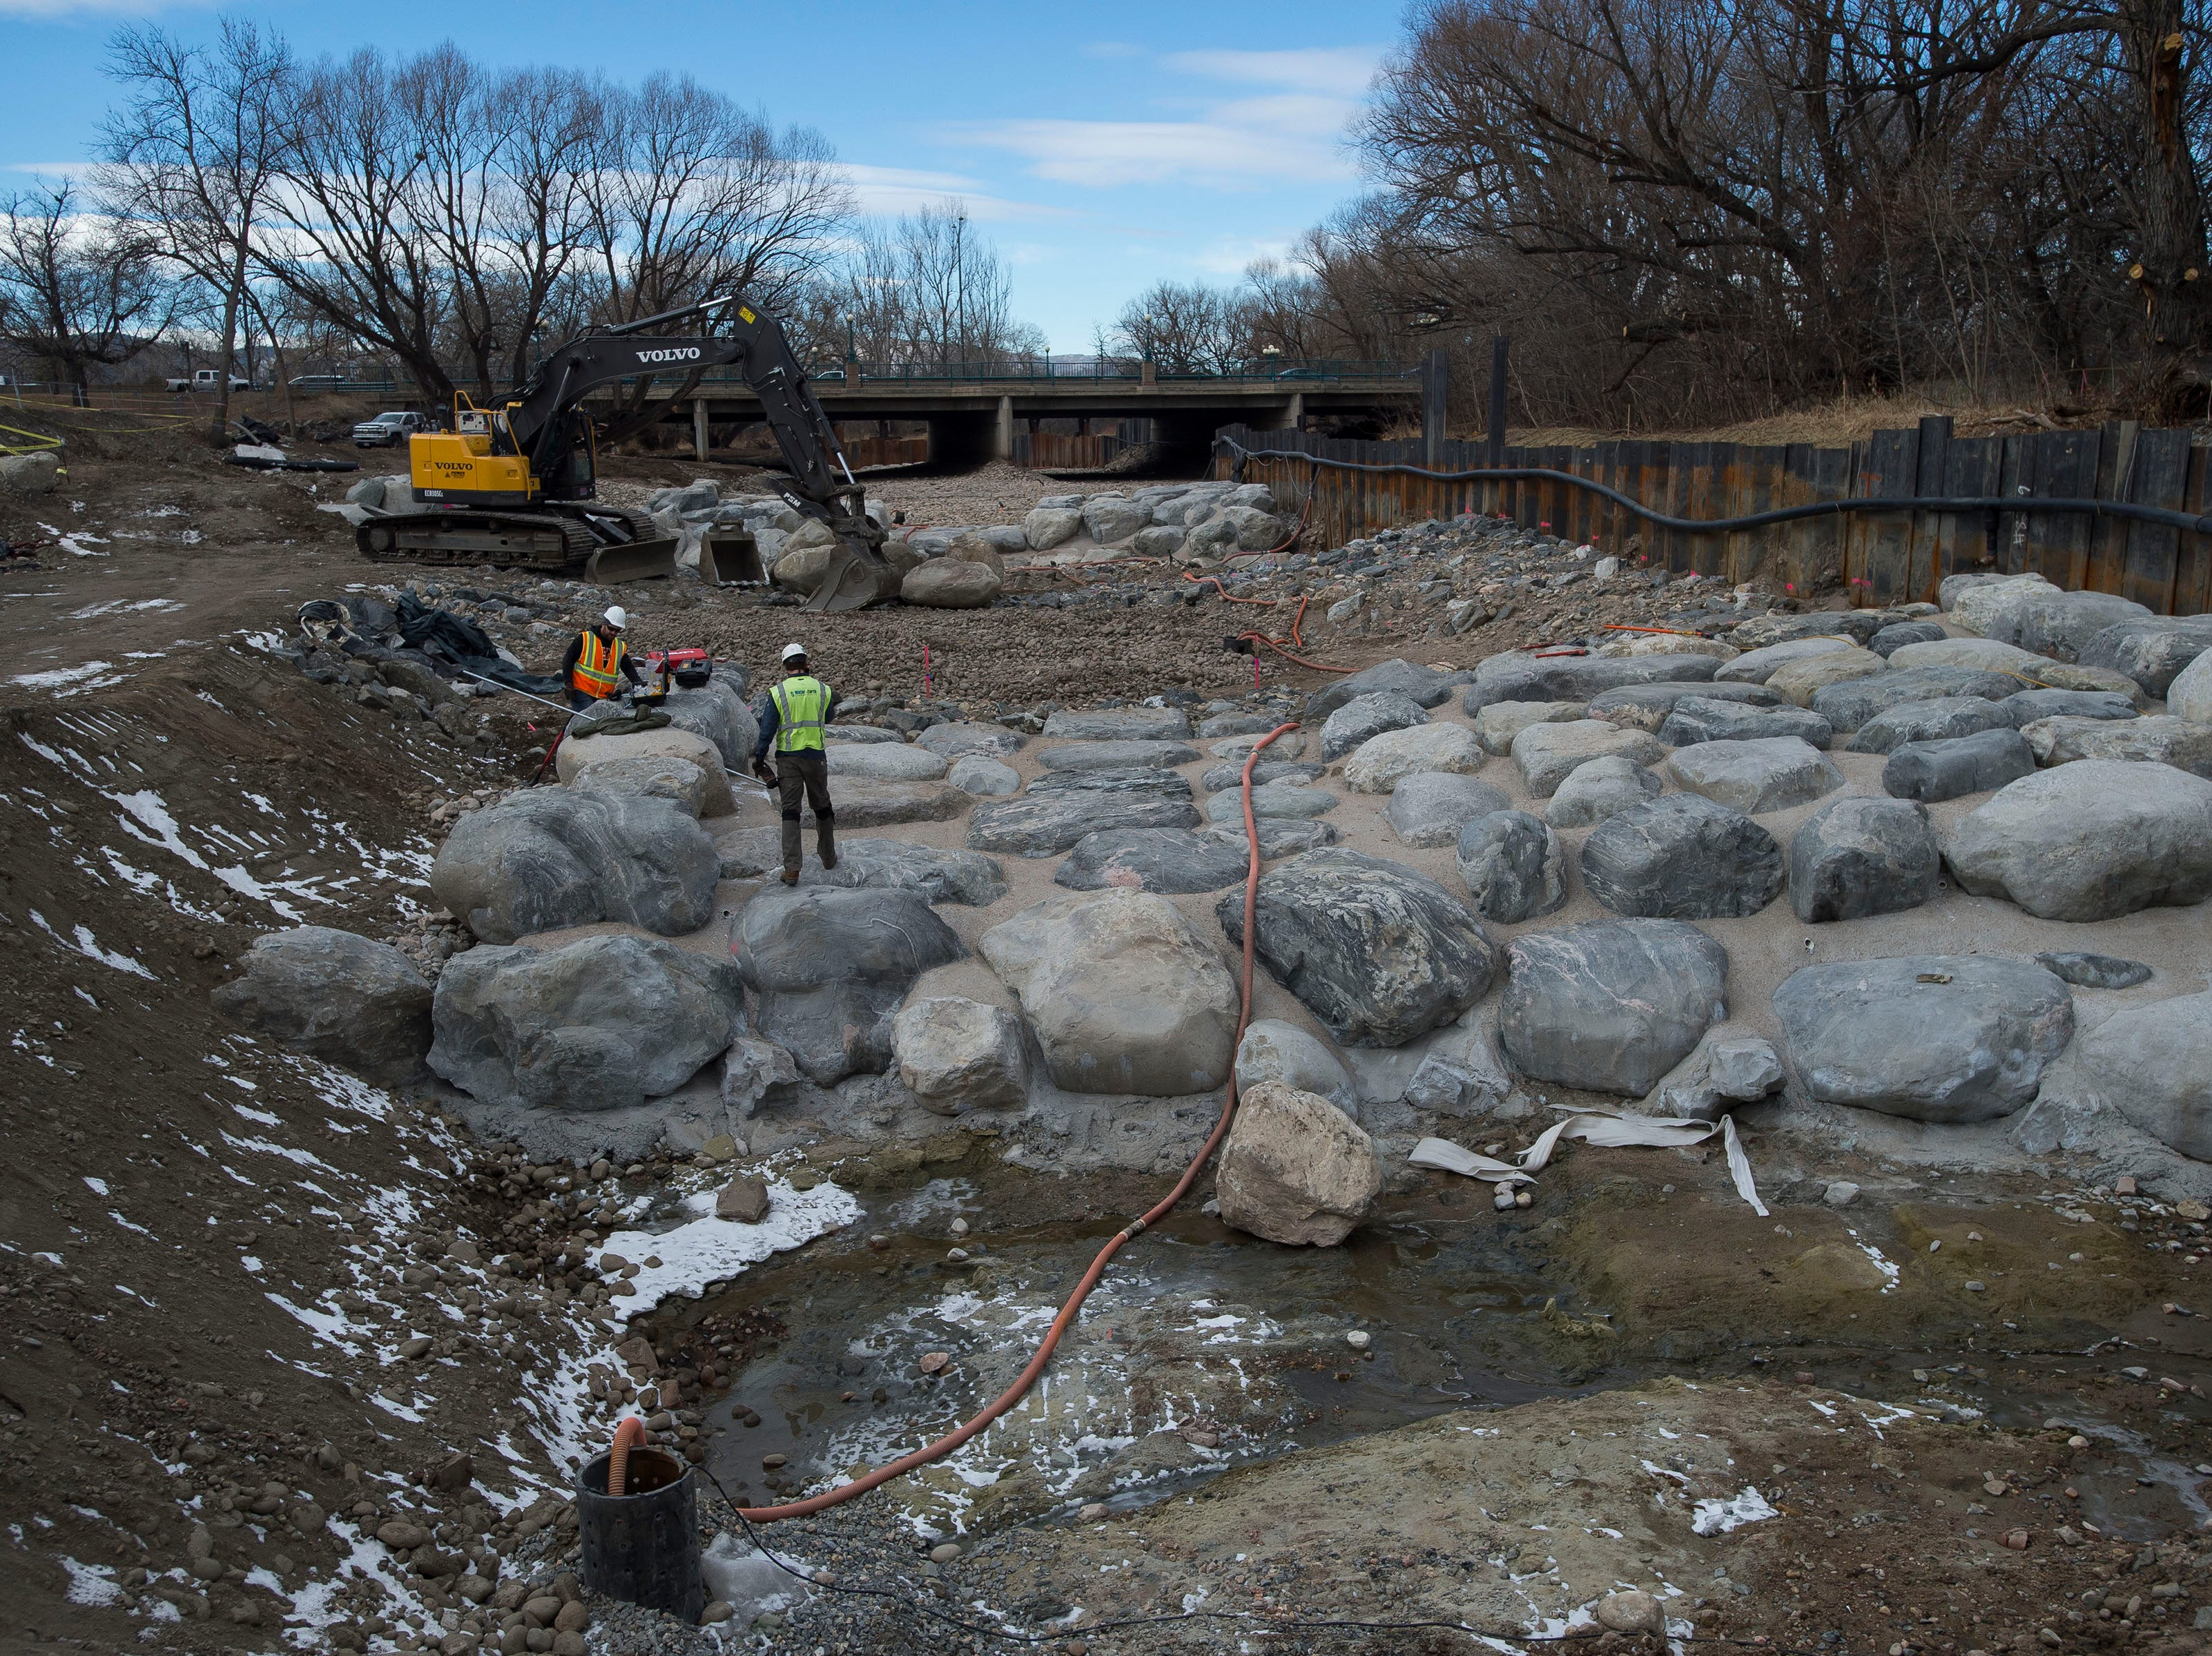 Construction crew work on-site where two concrete and stone wave features, complete with small passages for fish to move freely, have been built into the riverbed on Wednesday, Jan. 23, 2019, on the Cache la Poudre River, just South of North College Avenue in Fort Collins, Colo.